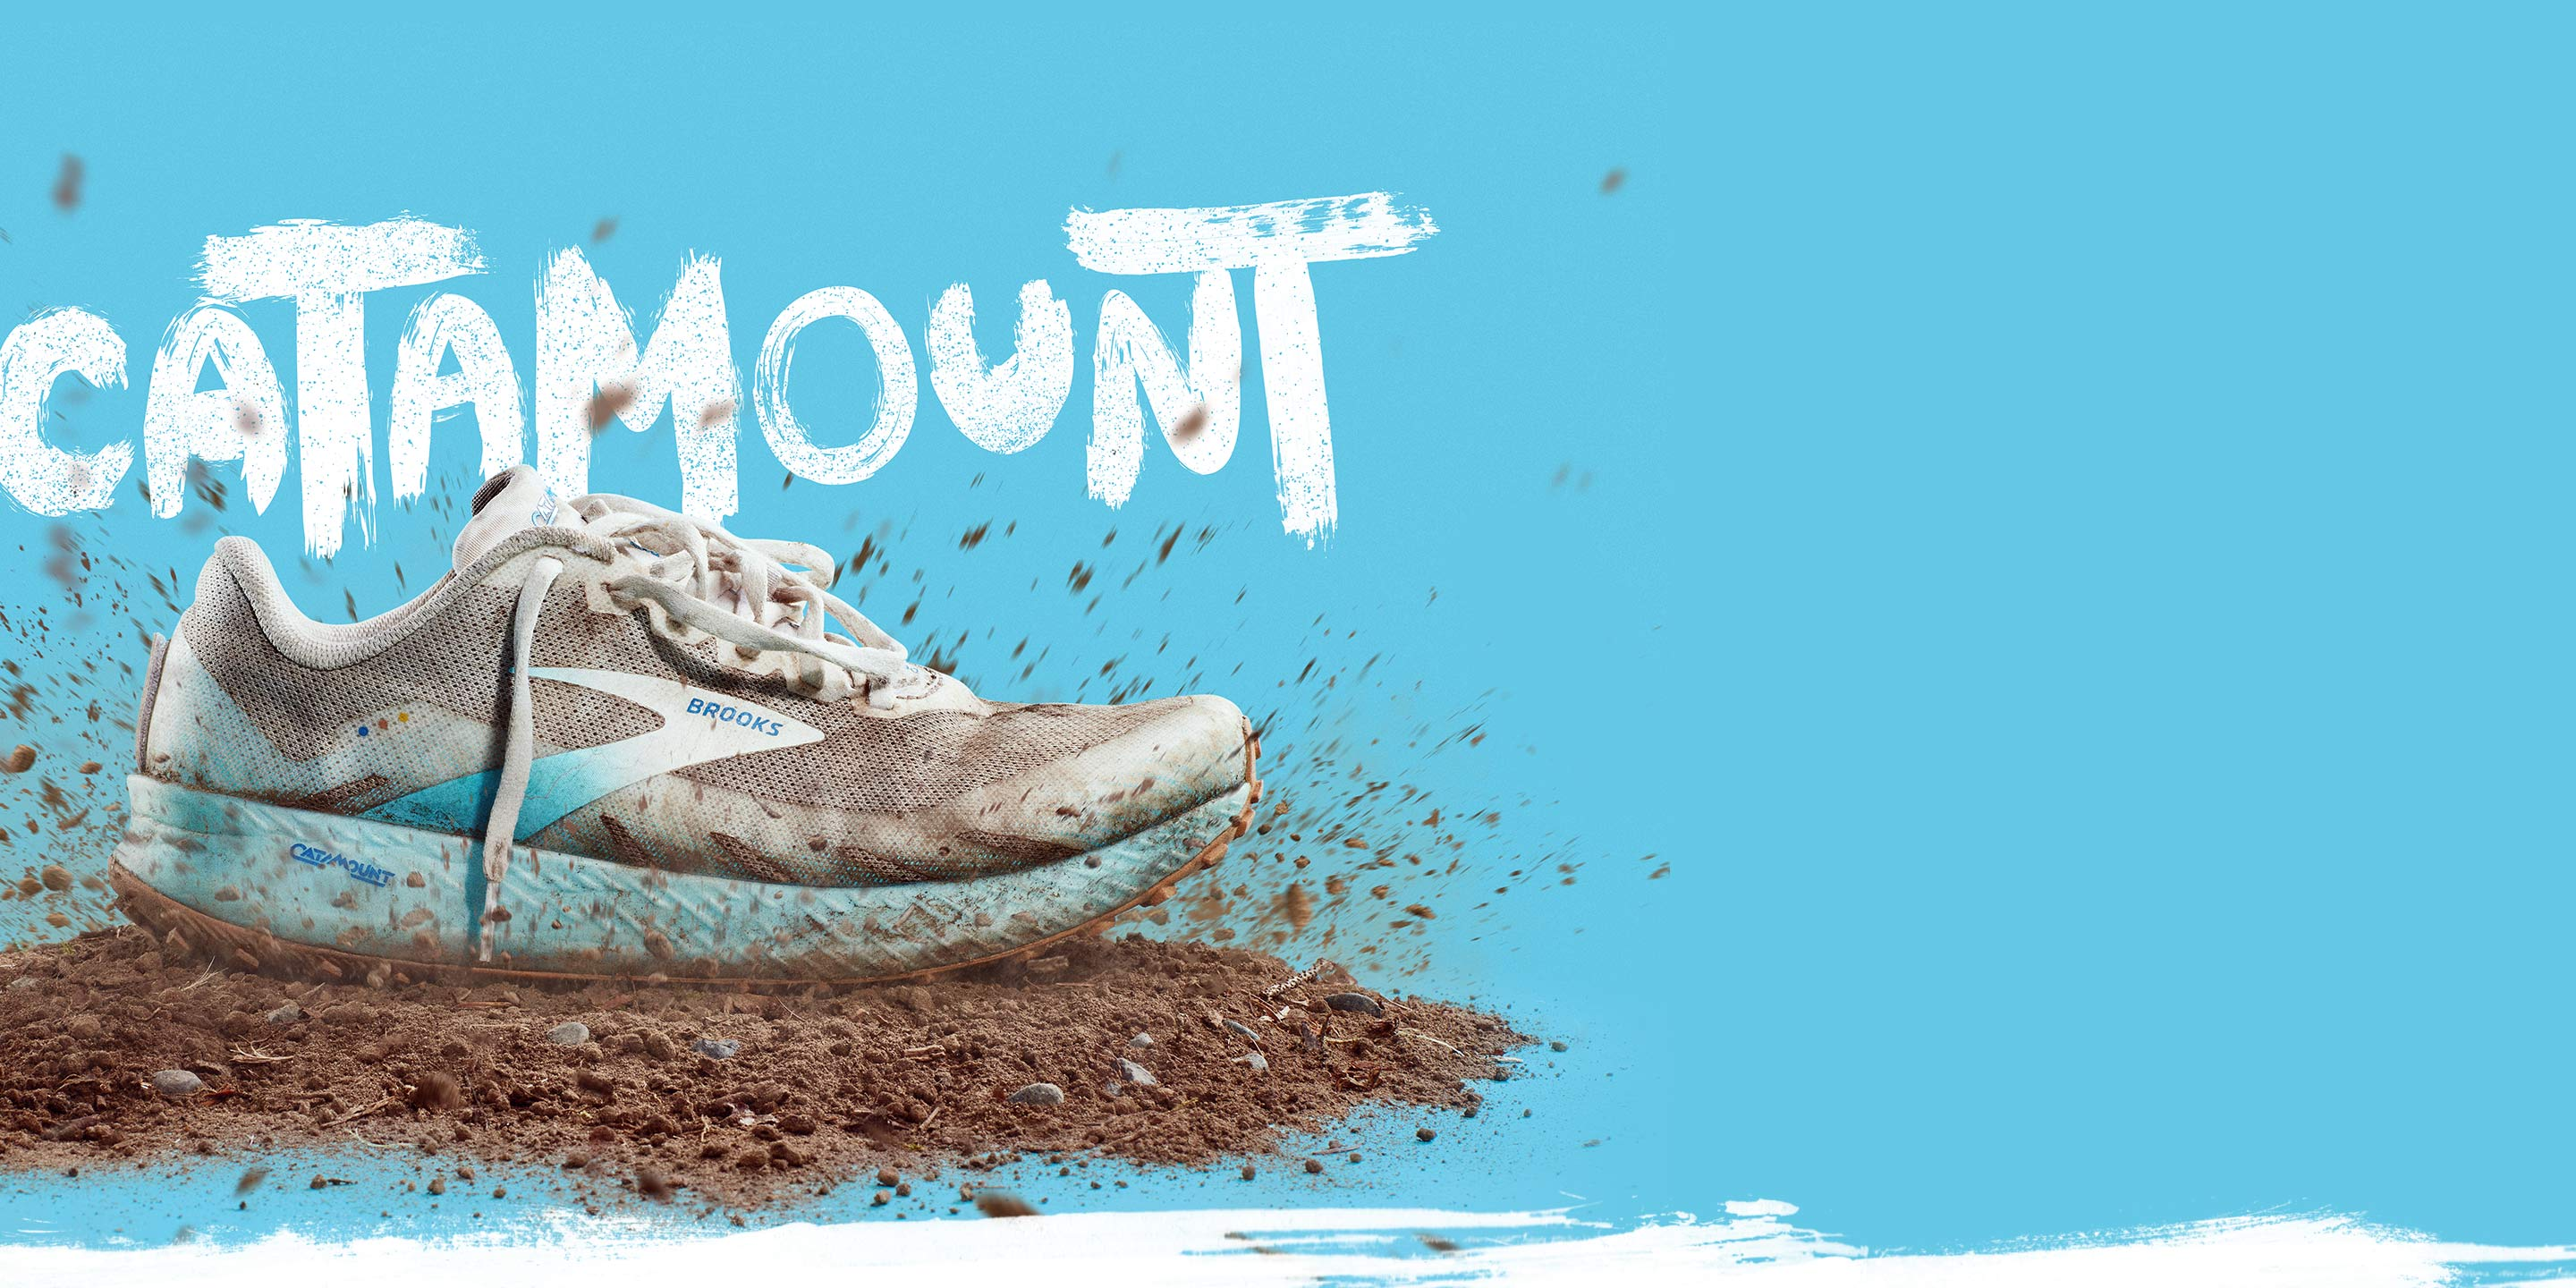 A trail shoe has just fallen on a mound of dirt, surrounded by dirt flying through the air.